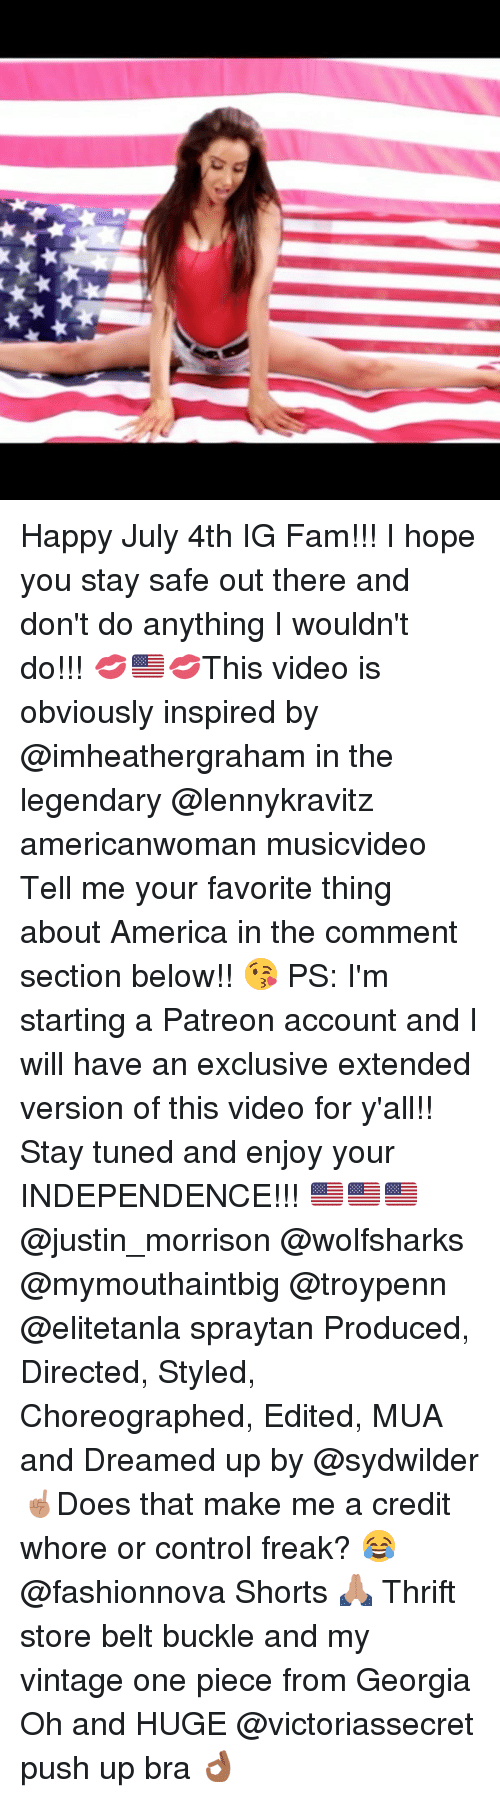 America, Fam, and Memes: Happy July 4th IG Fam!!! I hope you stay safe out there and don't do anything I wouldn't do!!! 💋🇺🇸💋This video is obviously inspired by @imheathergraham in the legendary @lennykravitz americanwoman musicvideo Tell me your favorite thing about America in the comment section below!! 😘 PS: I'm starting a Patreon account and I will have an exclusive extended version of this video for y'all!! Stay tuned and enjoy your INDEPENDENCE!!! 🇺🇸🇺🇸🇺🇸 @justin_morrison @wolfsharks @mymouthaintbig @troypenn @elitetanla spraytan Produced, Directed, Styled, Choreographed, Edited, MUA and Dreamed up by @sydwilder ☝🏽Does that make me a credit whore or control freak? 😂 @fashionnova Shorts 🙏🏽 Thrift store belt buckle and my vintage one piece from Georgia Oh and HUGE @victoriassecret push up bra 👌🏾